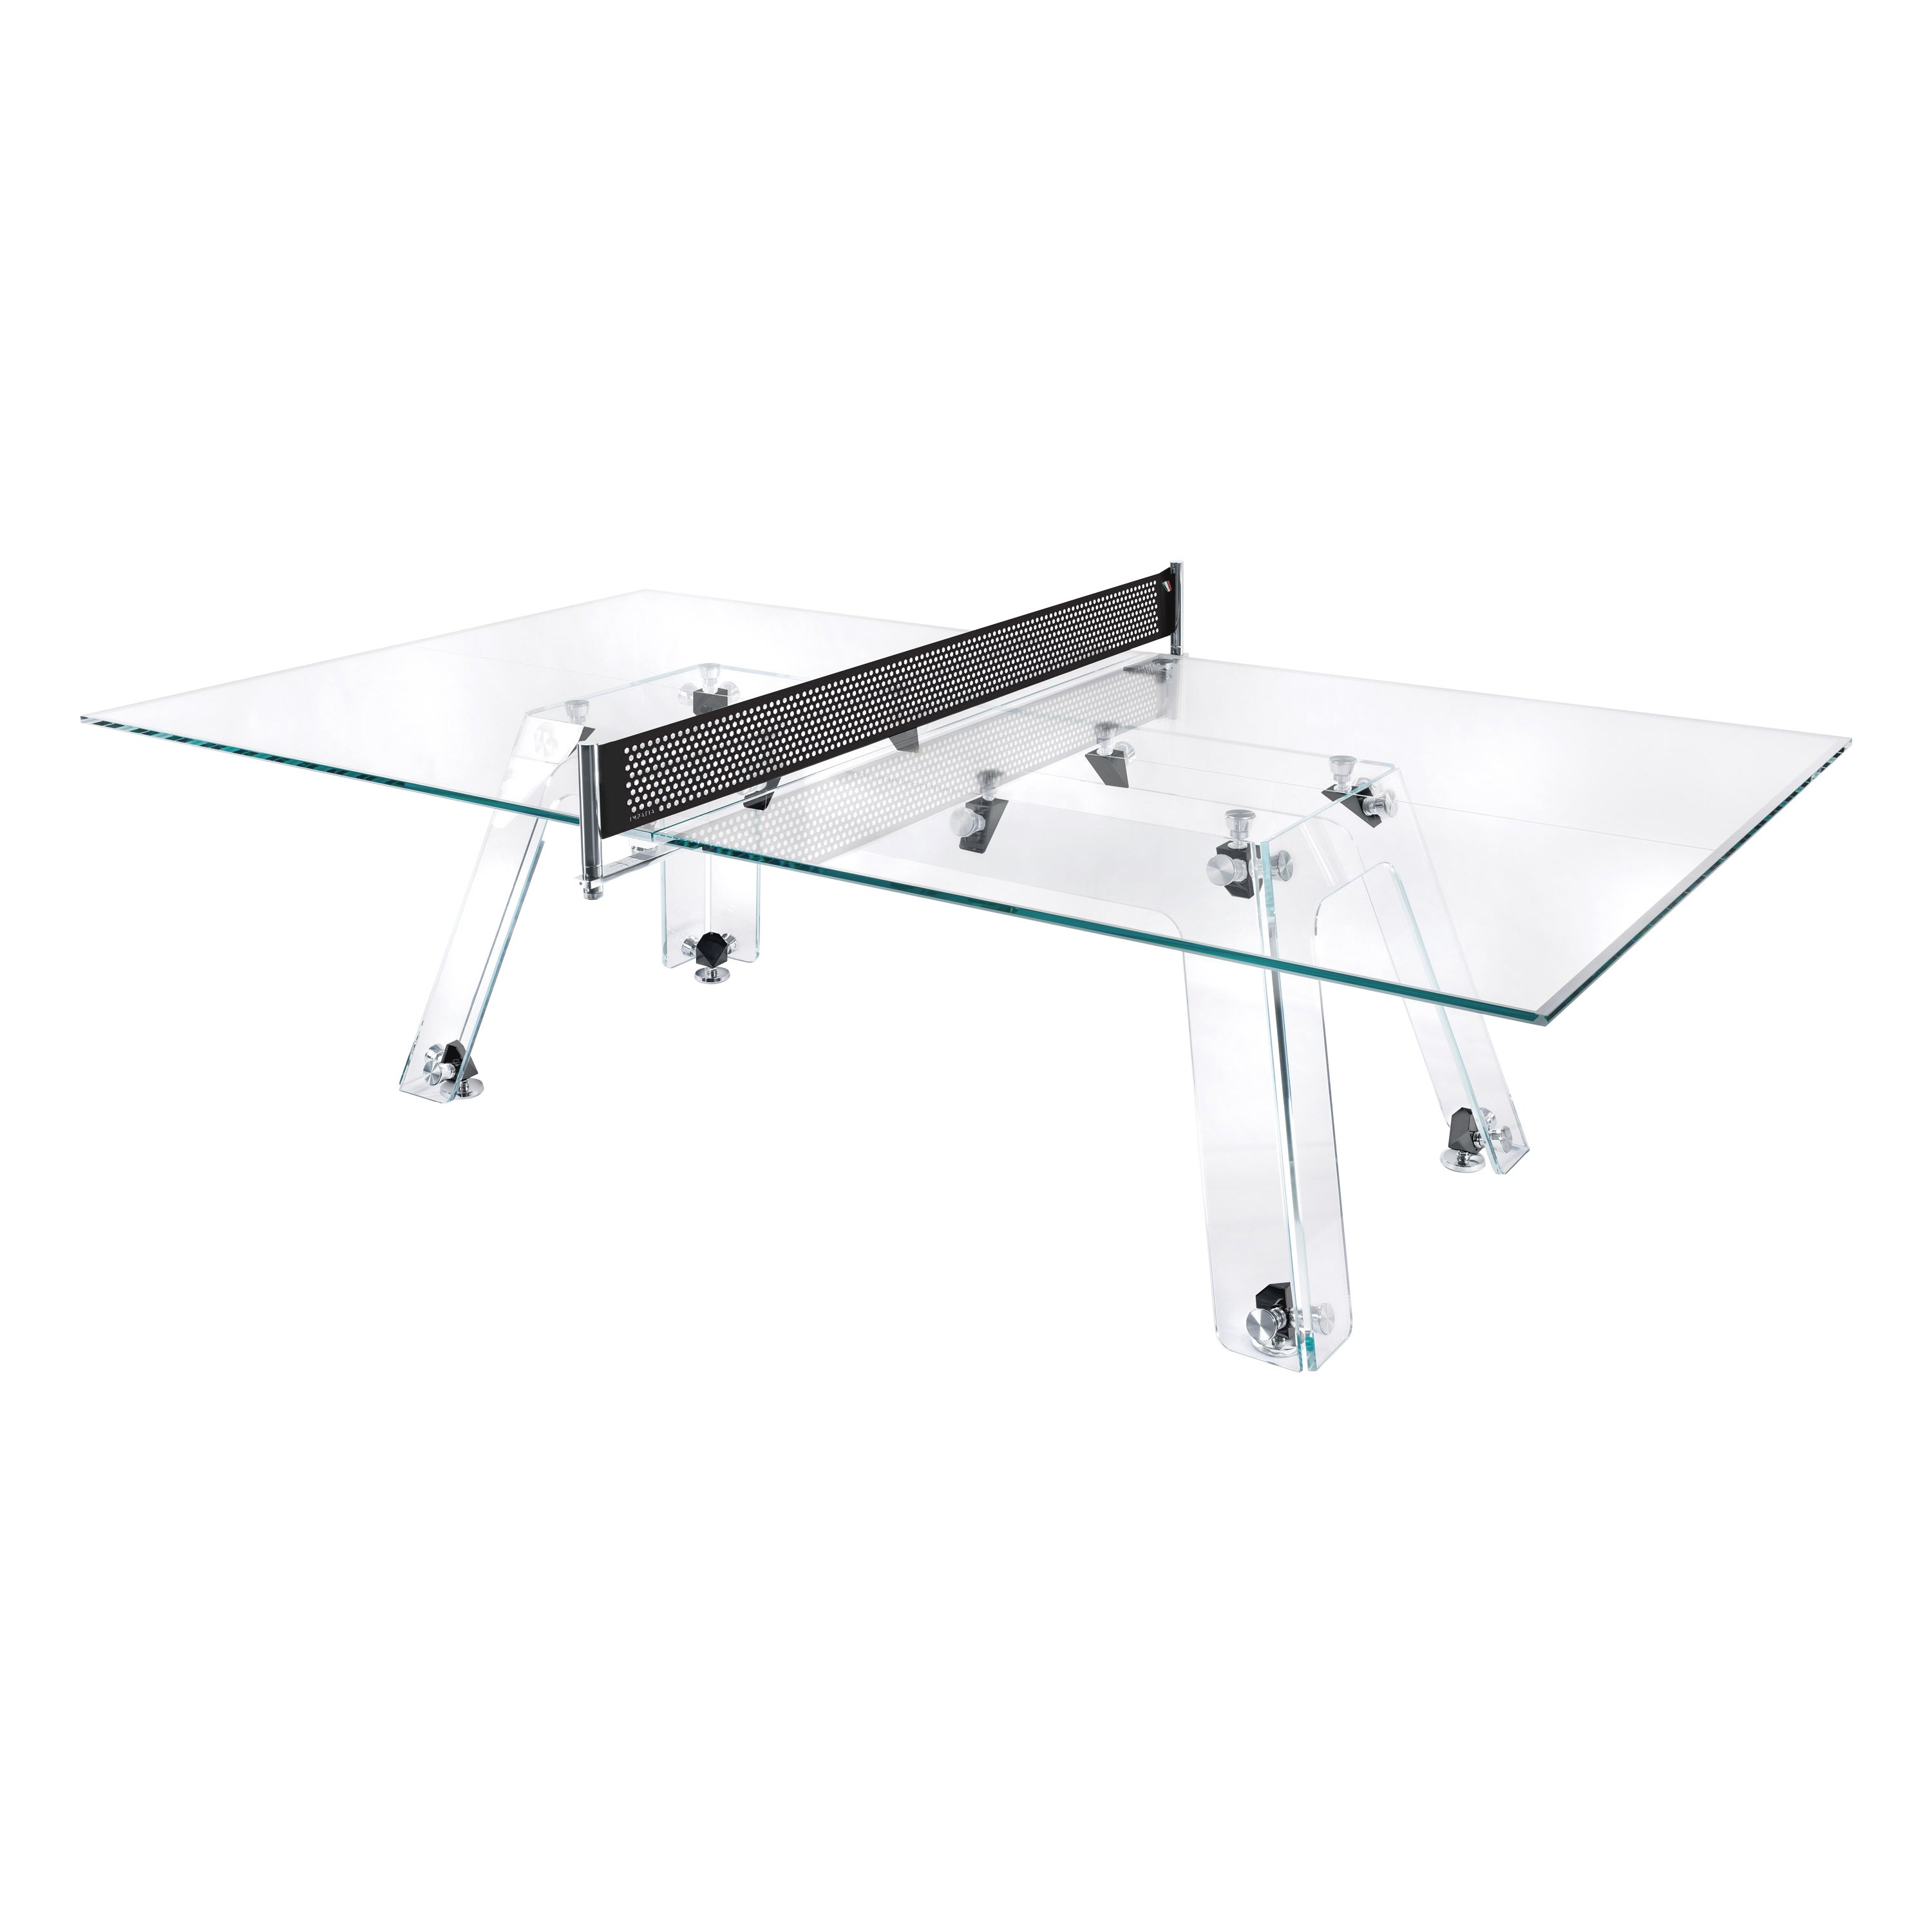 Lungolinea Black Chrome Edition, Ping Pong Table, by Impatia